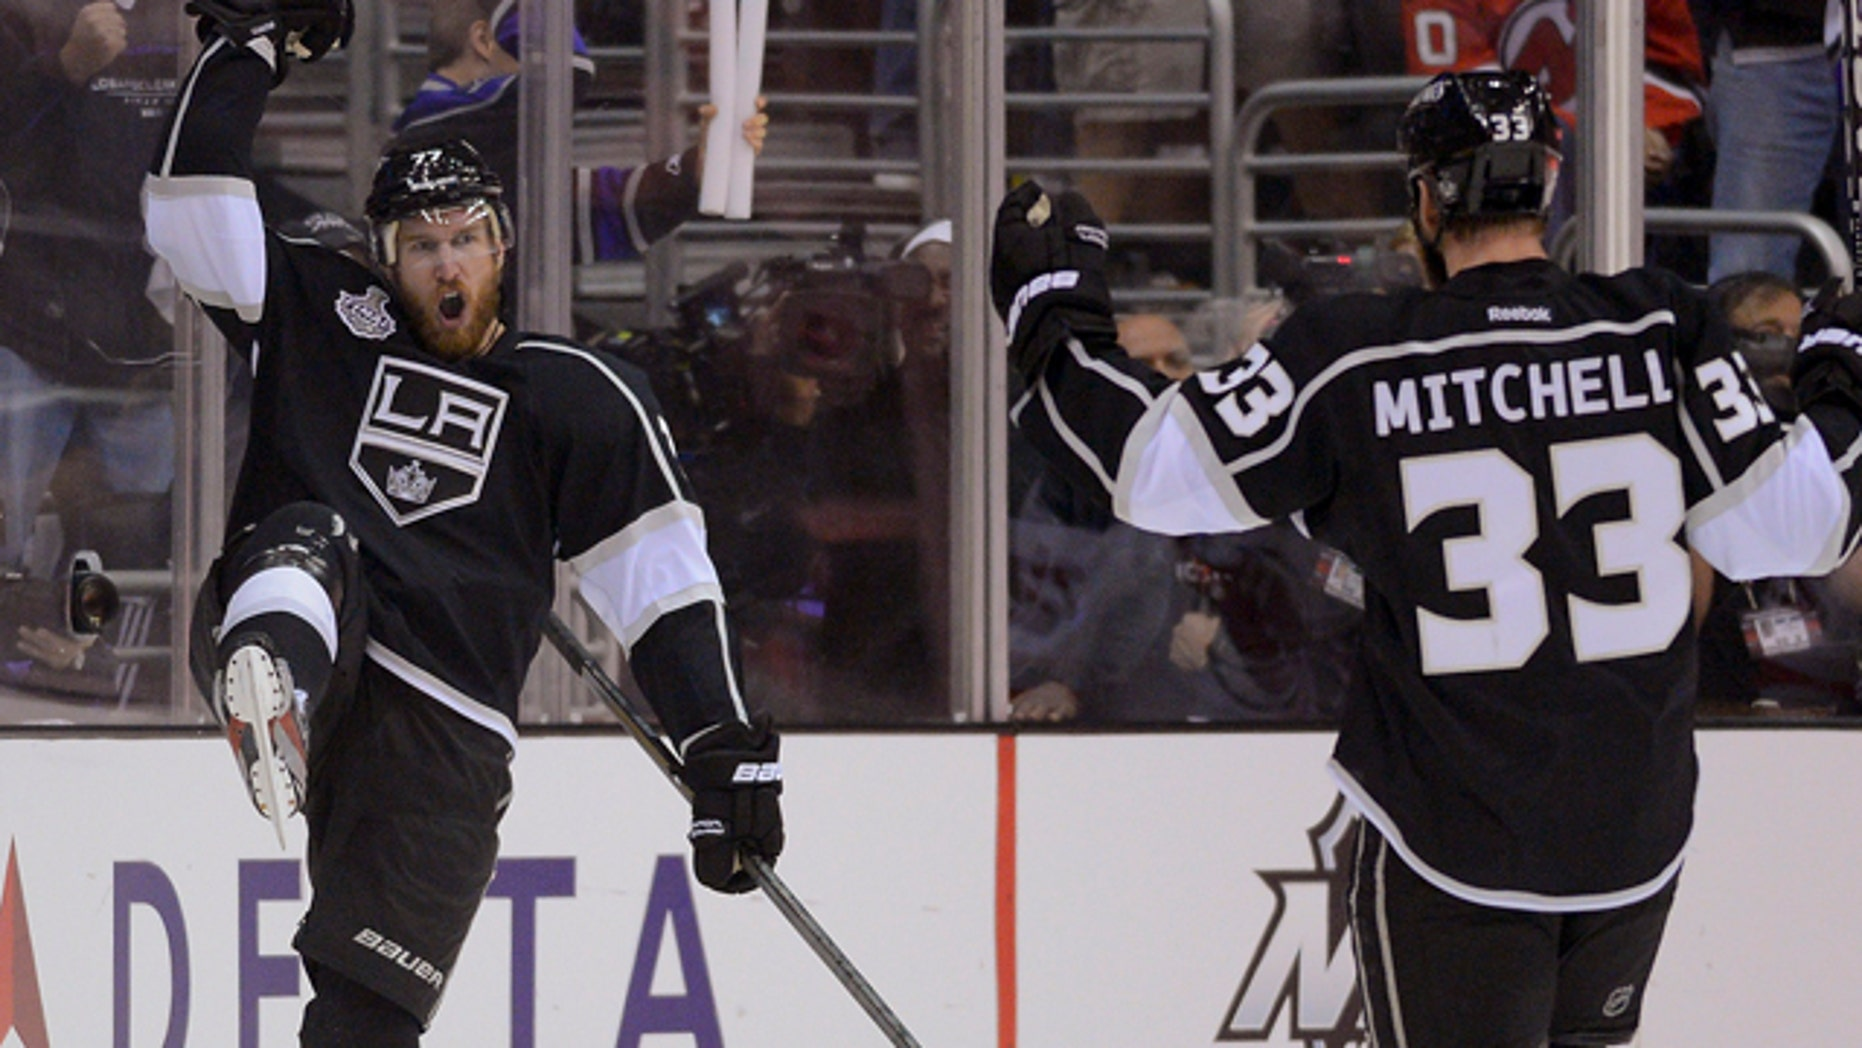 June 4, 2012: Los Angeles Kings center Jeff Carter (77) and Los Angeles Kings defenseman Willie Mitchell (33) react after Carter's third period goal against the New Jersey Devils.